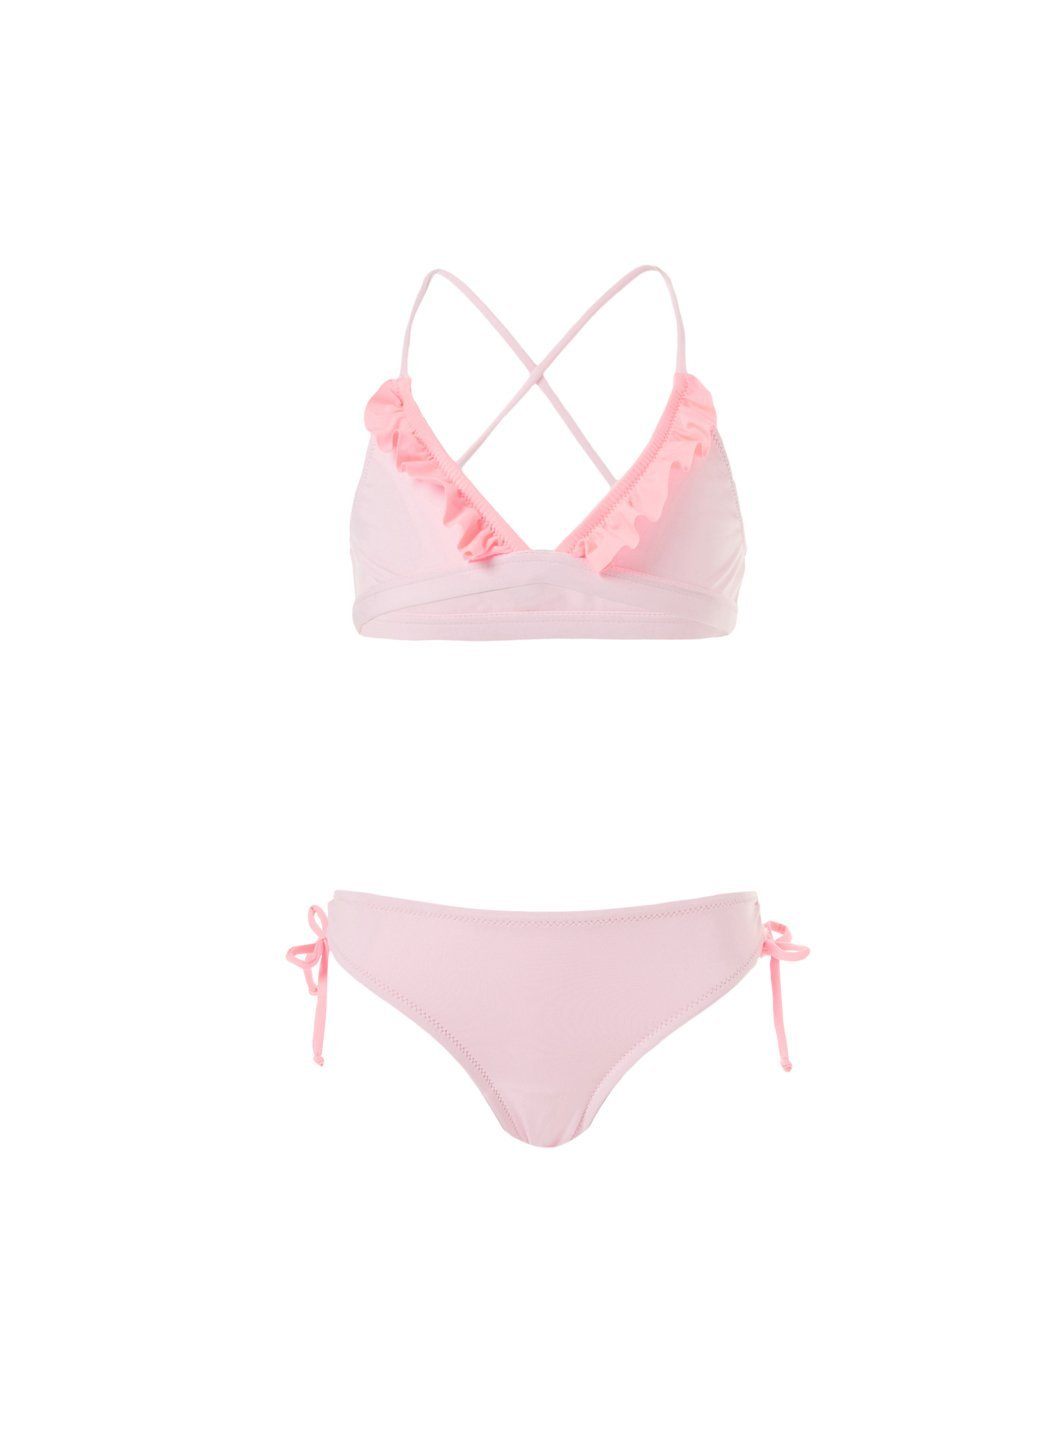 baby new york pale pink neon triangle bikini 2019